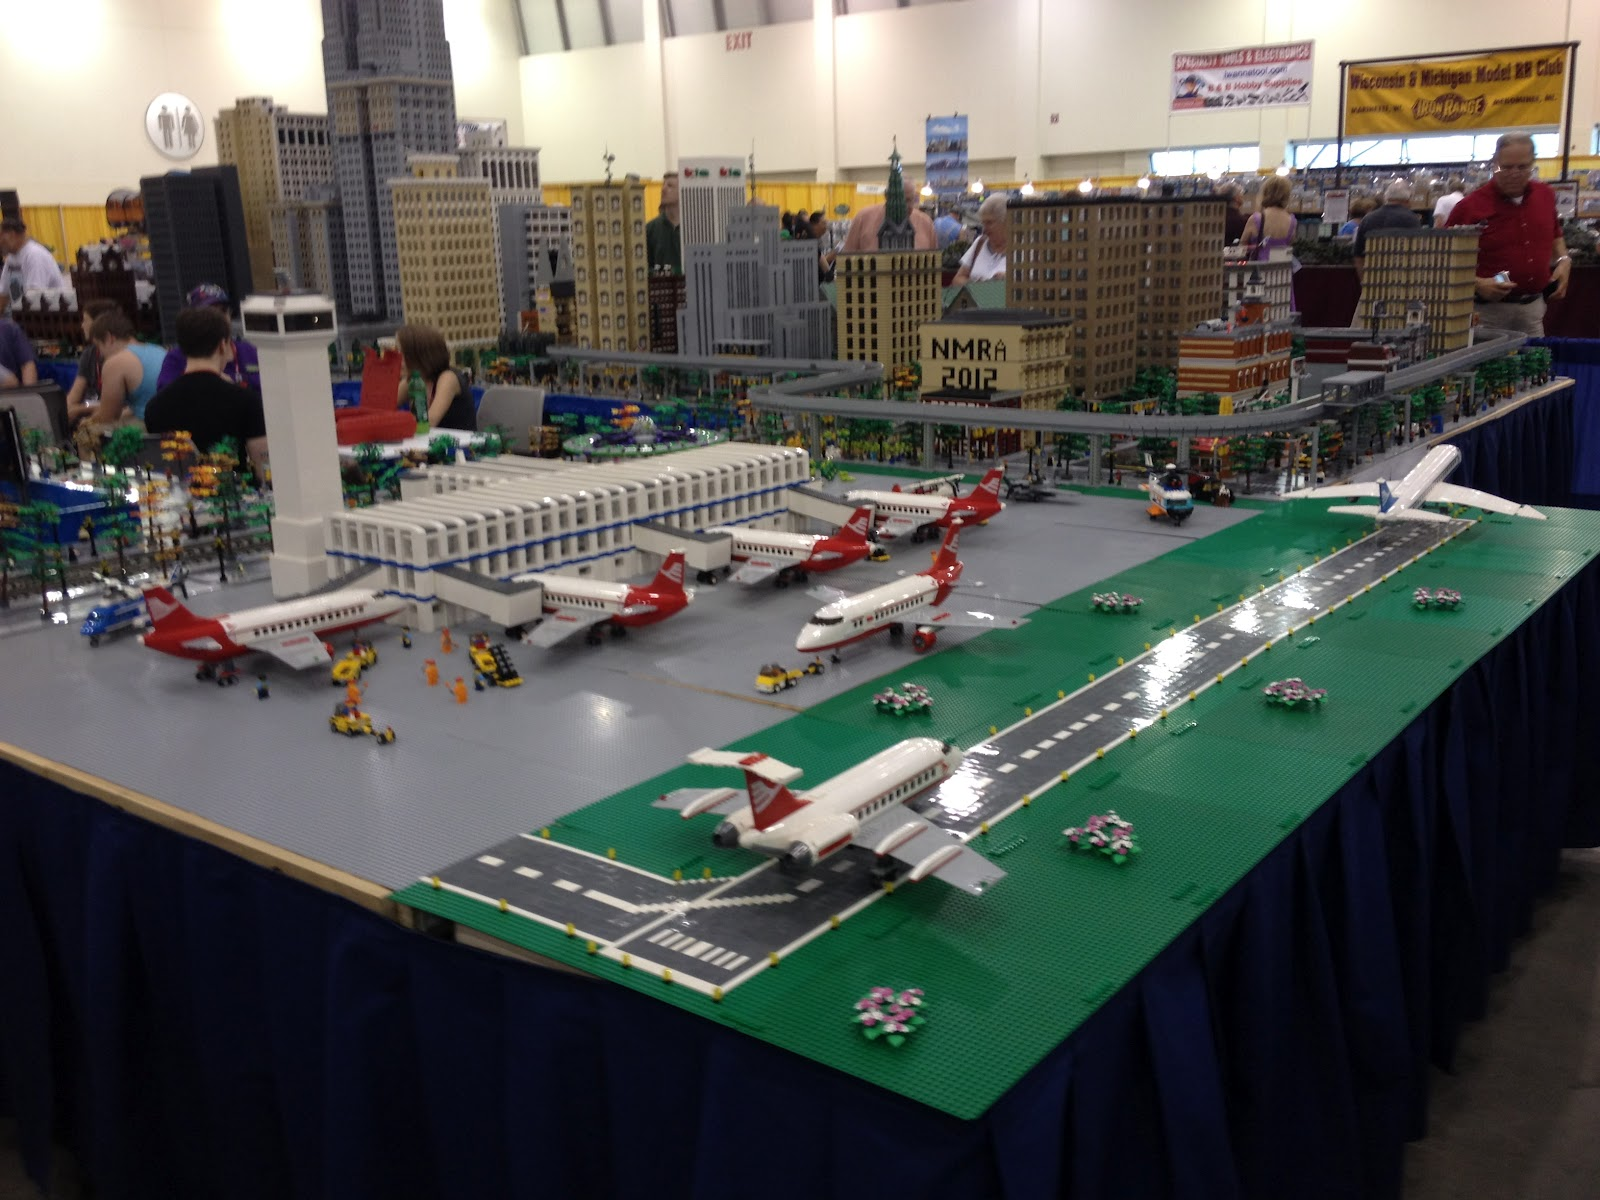 Railroad Empire: Pictures from National Train Show